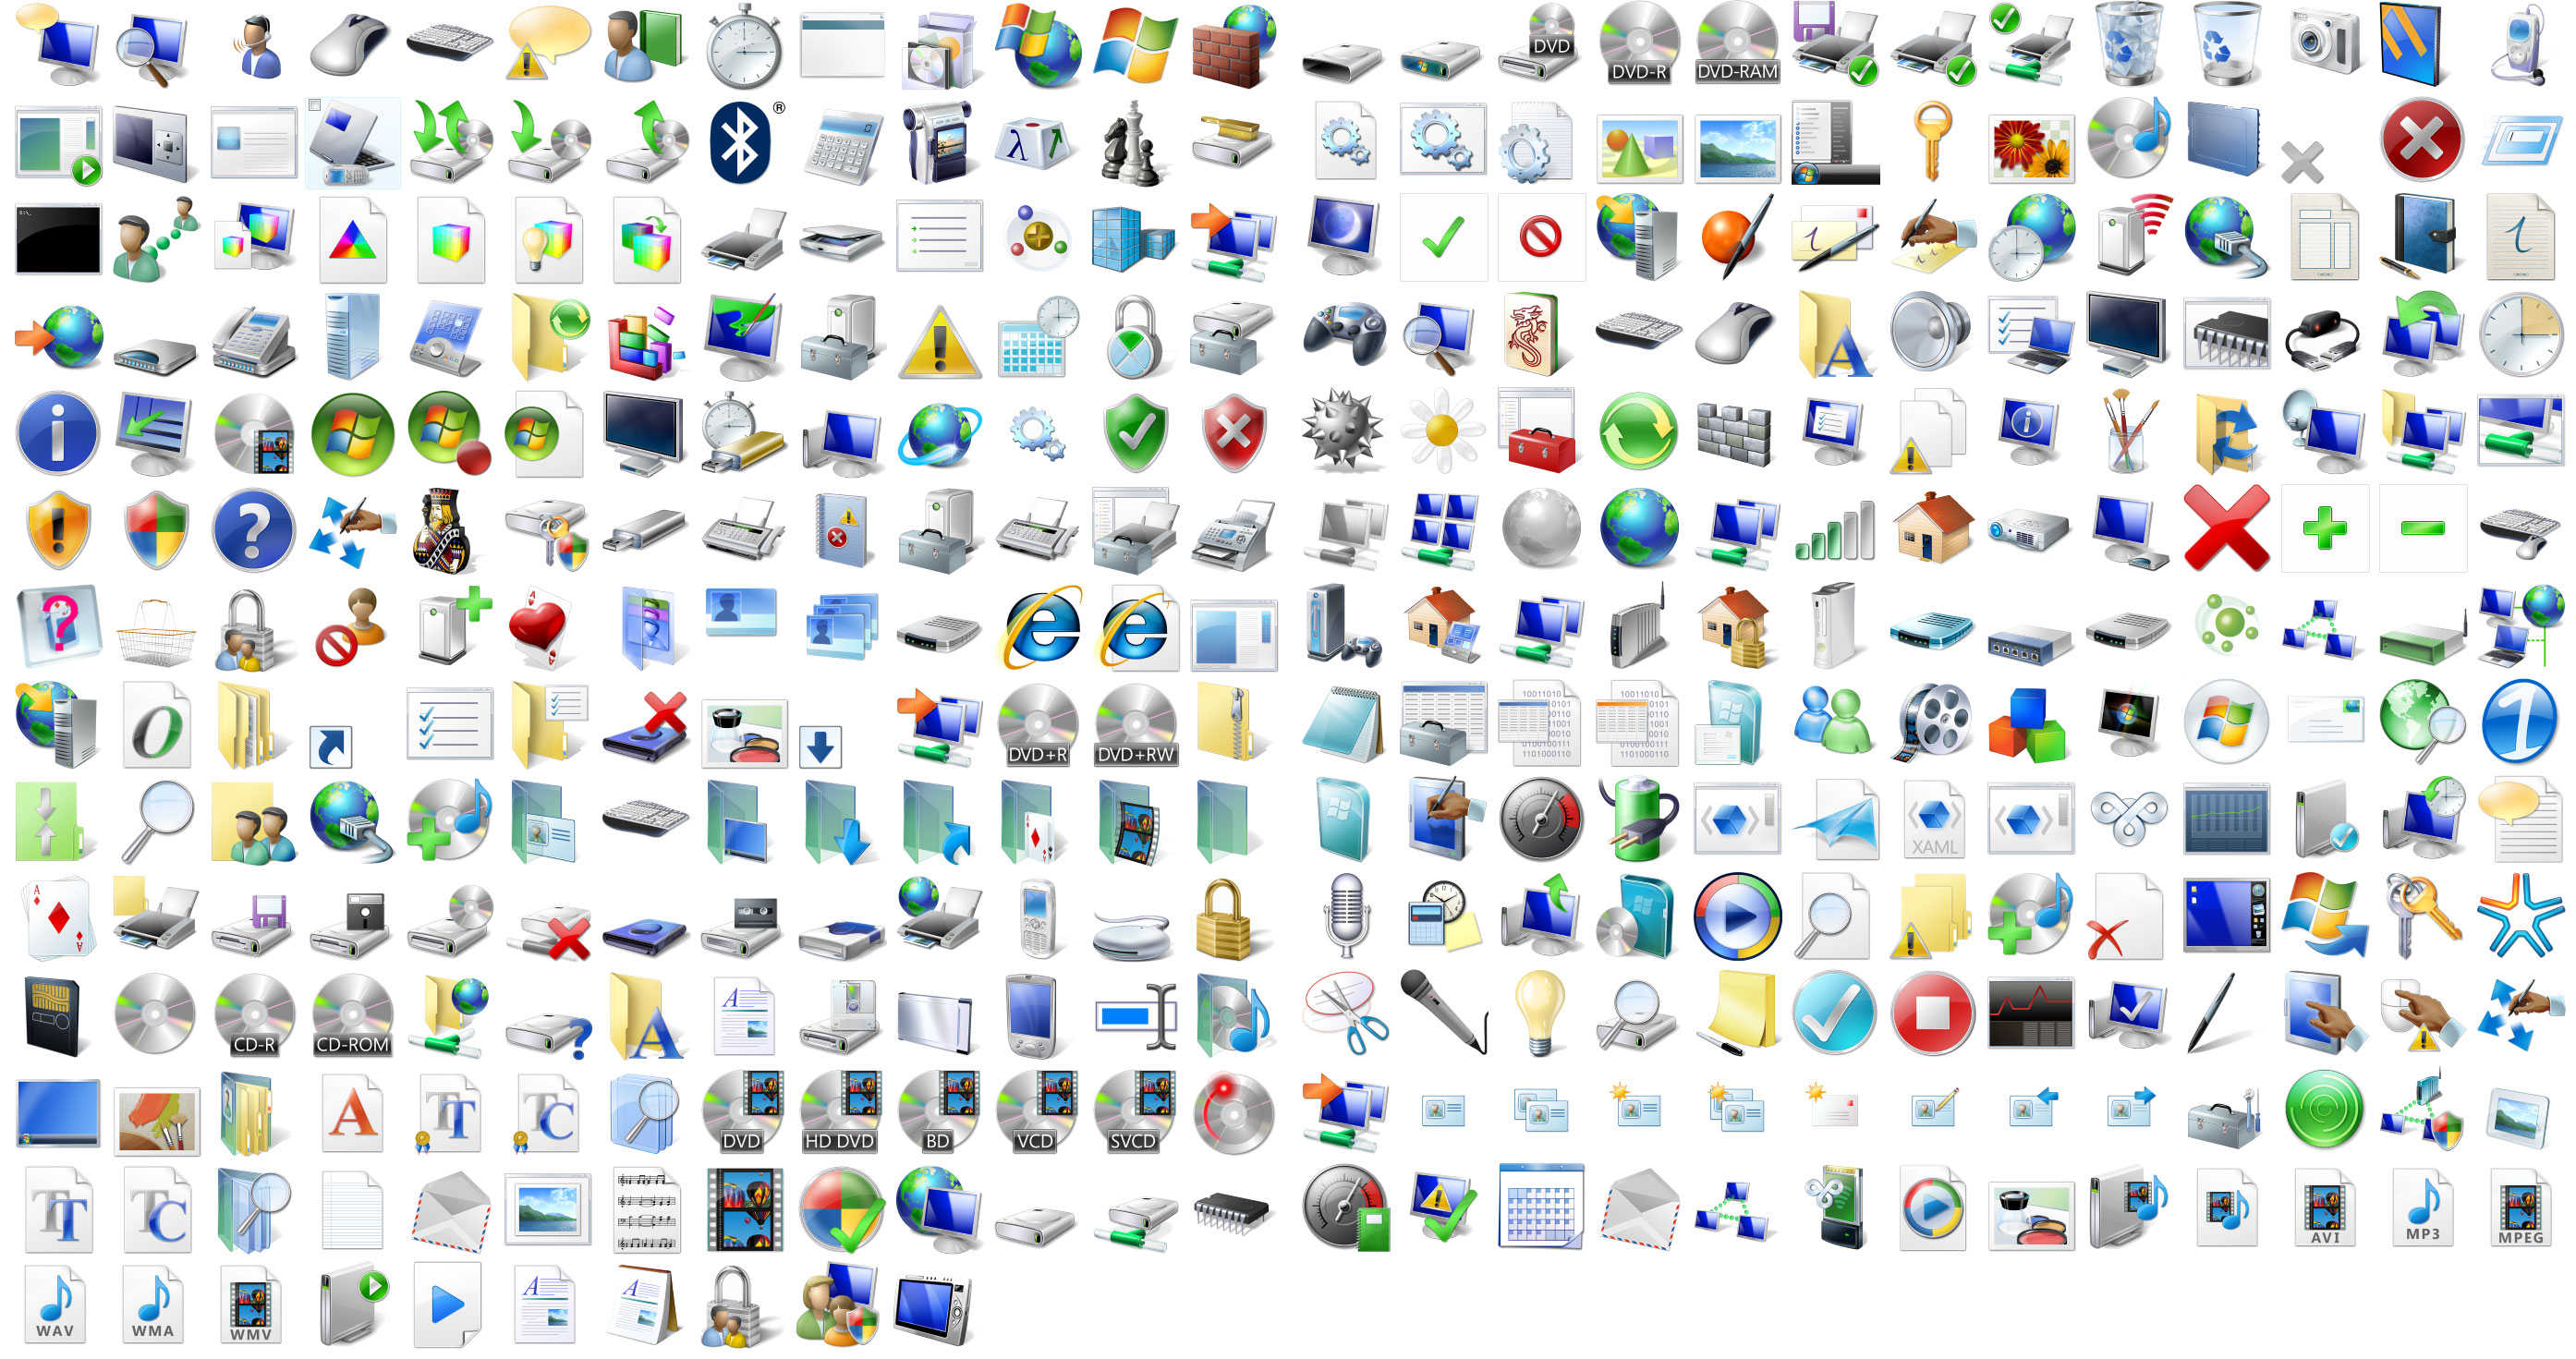 12 Free Email Icons For Windows Images